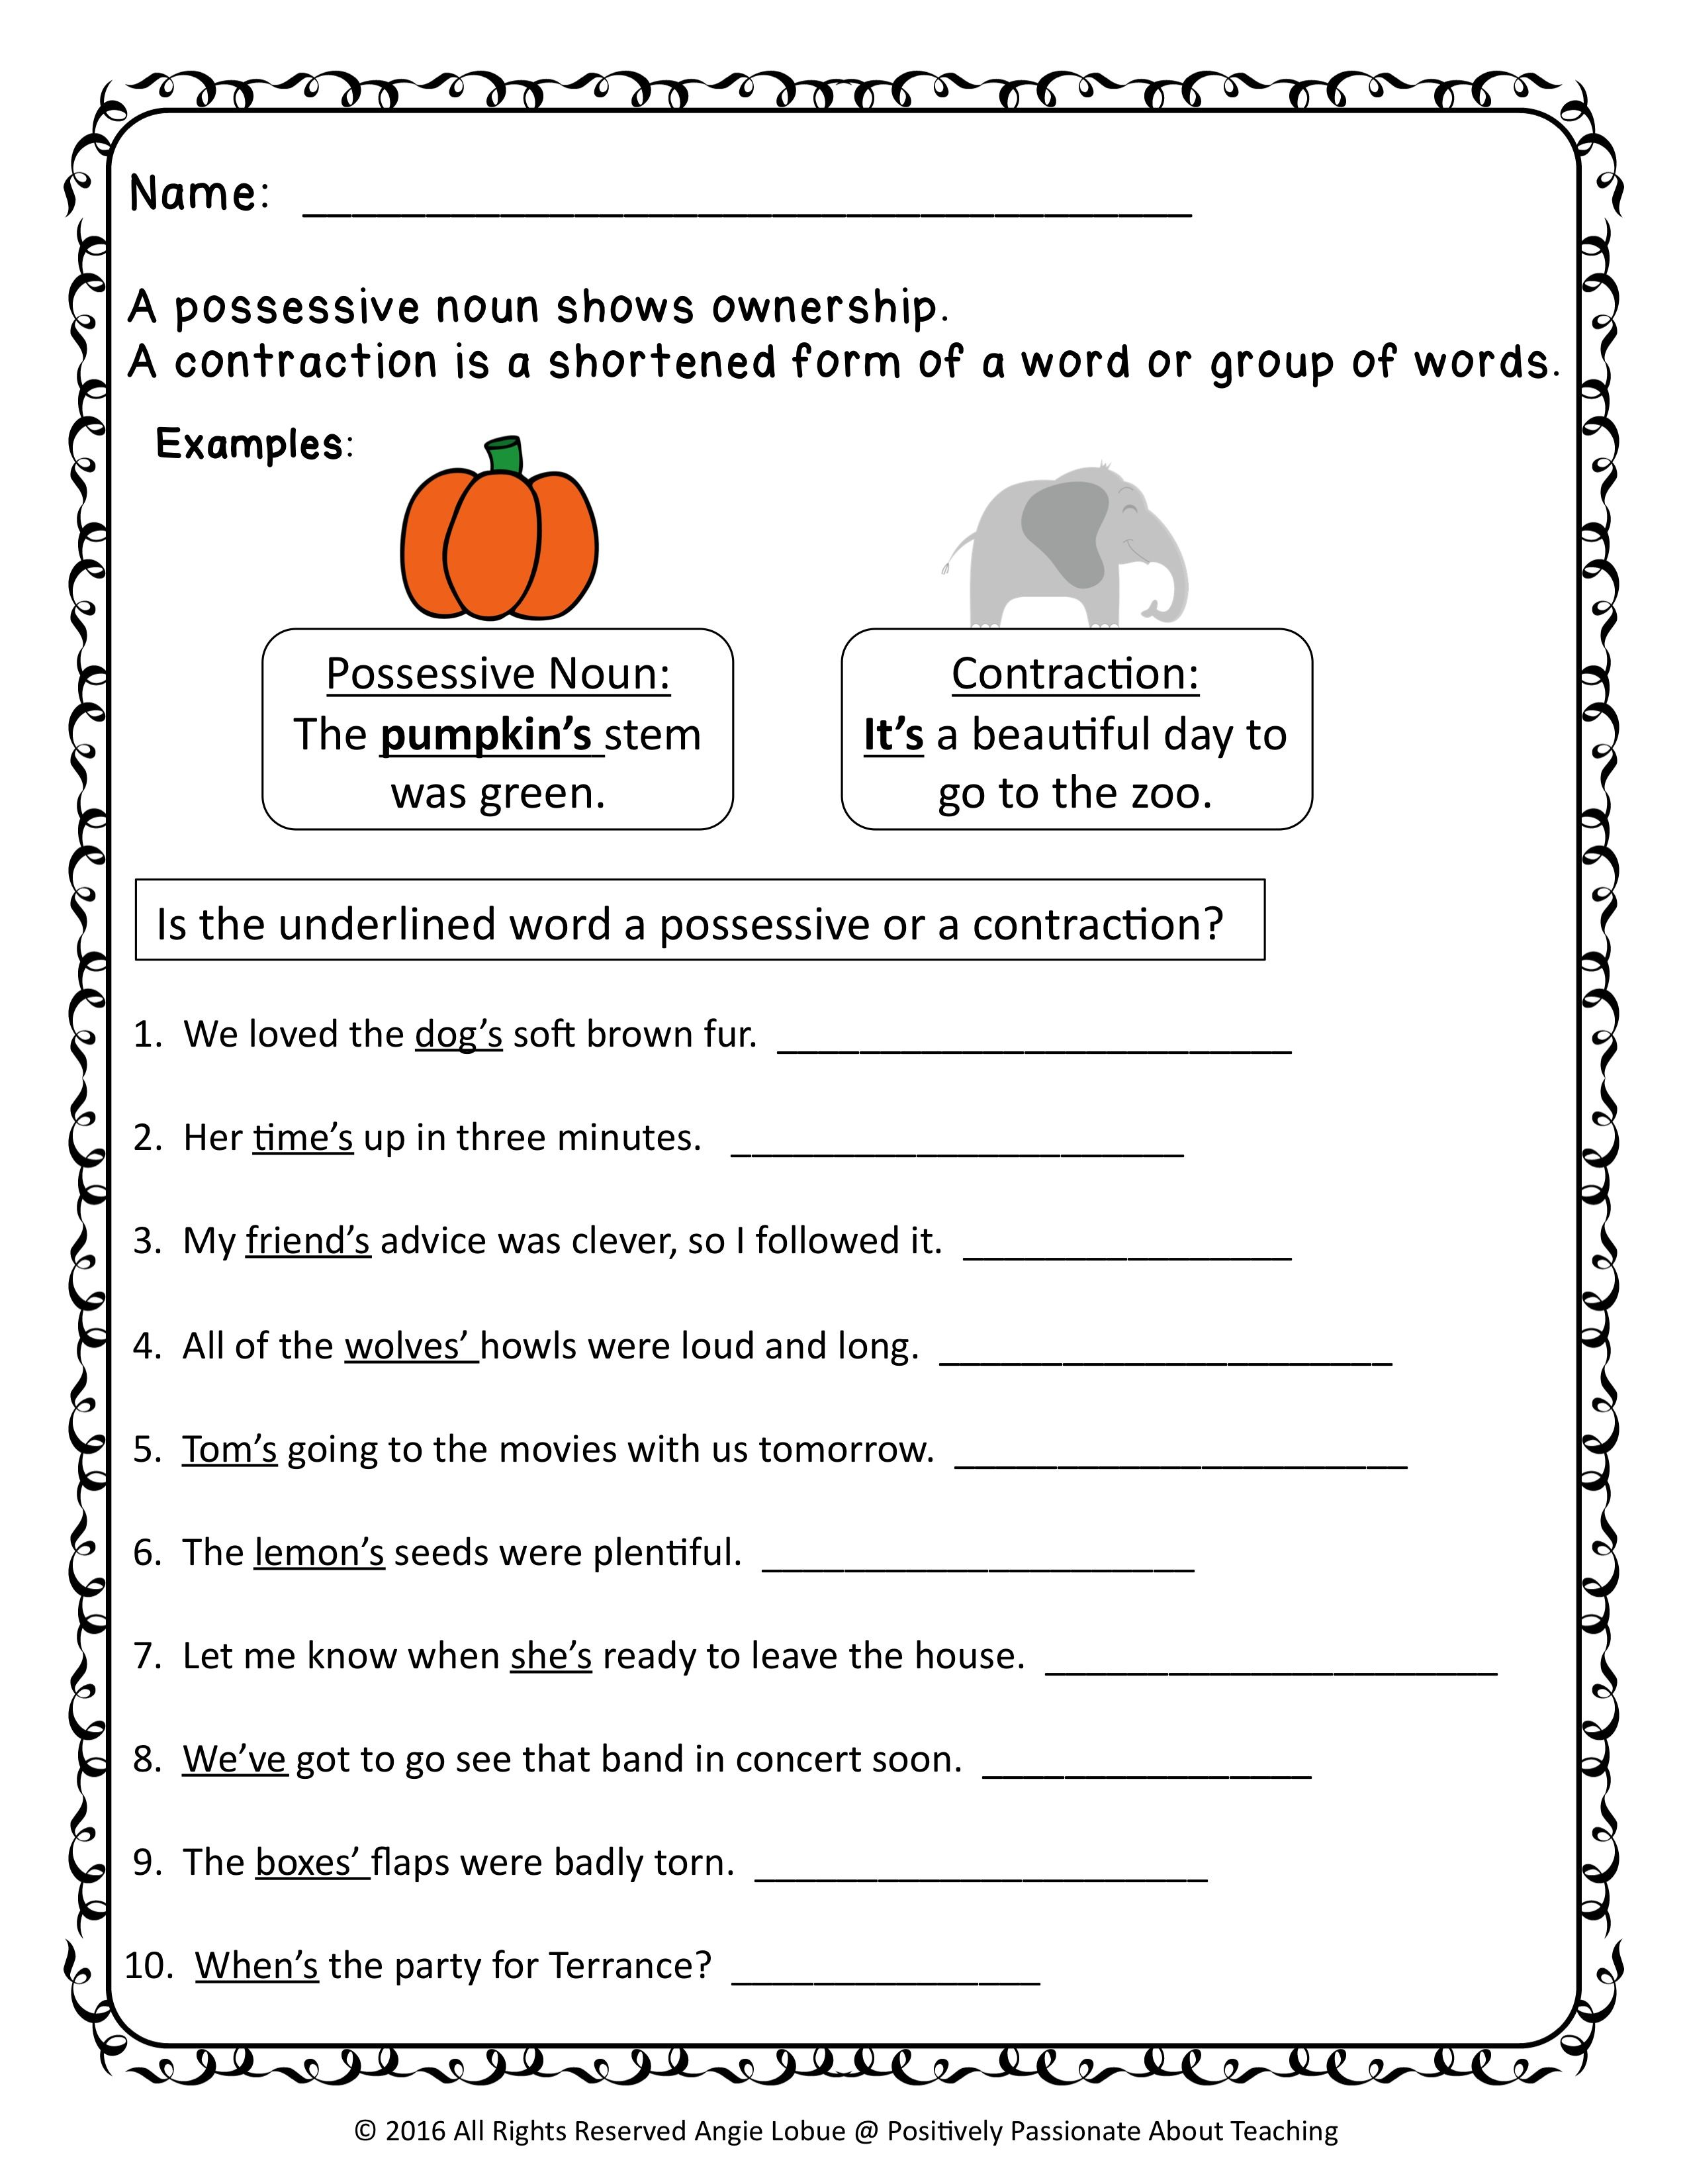 Possessive Or Contraction Freebie Includes Answer Key Www Facebook Com Positivelypassionateaboutteaching Engaging Lesson Plans Possessives Engaging Lessons